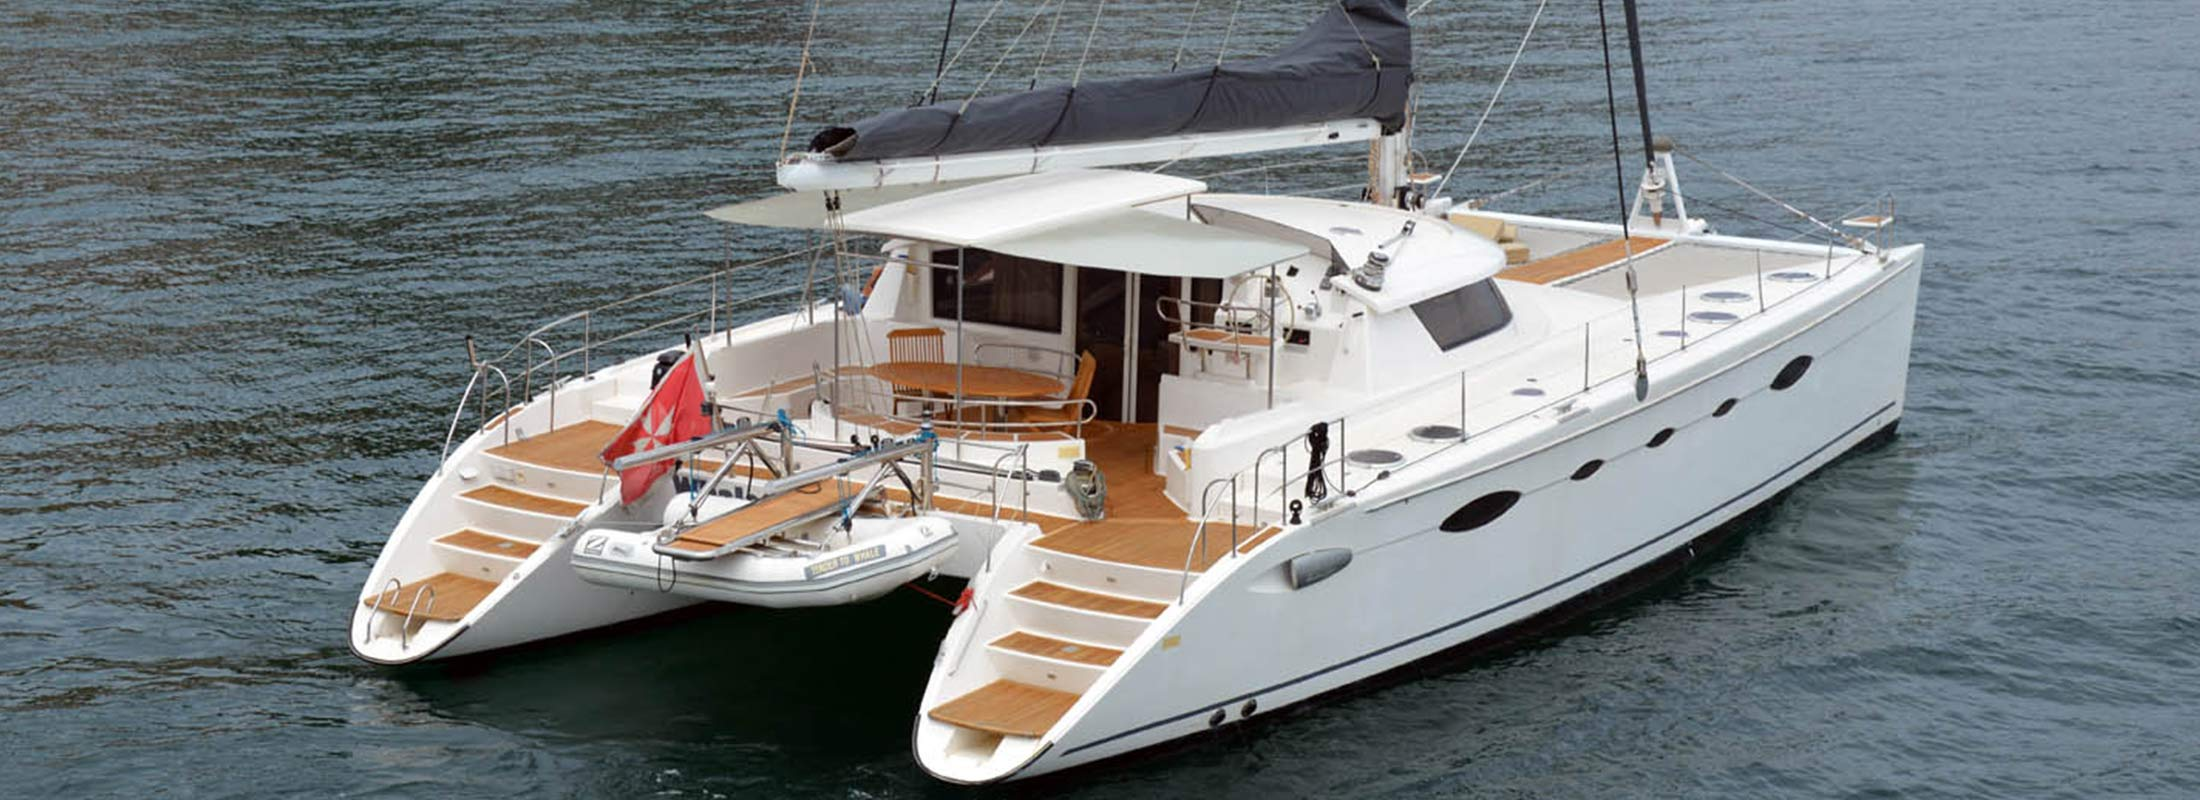 Whale Sailing Yacht for Charter Mediterranean slider 2